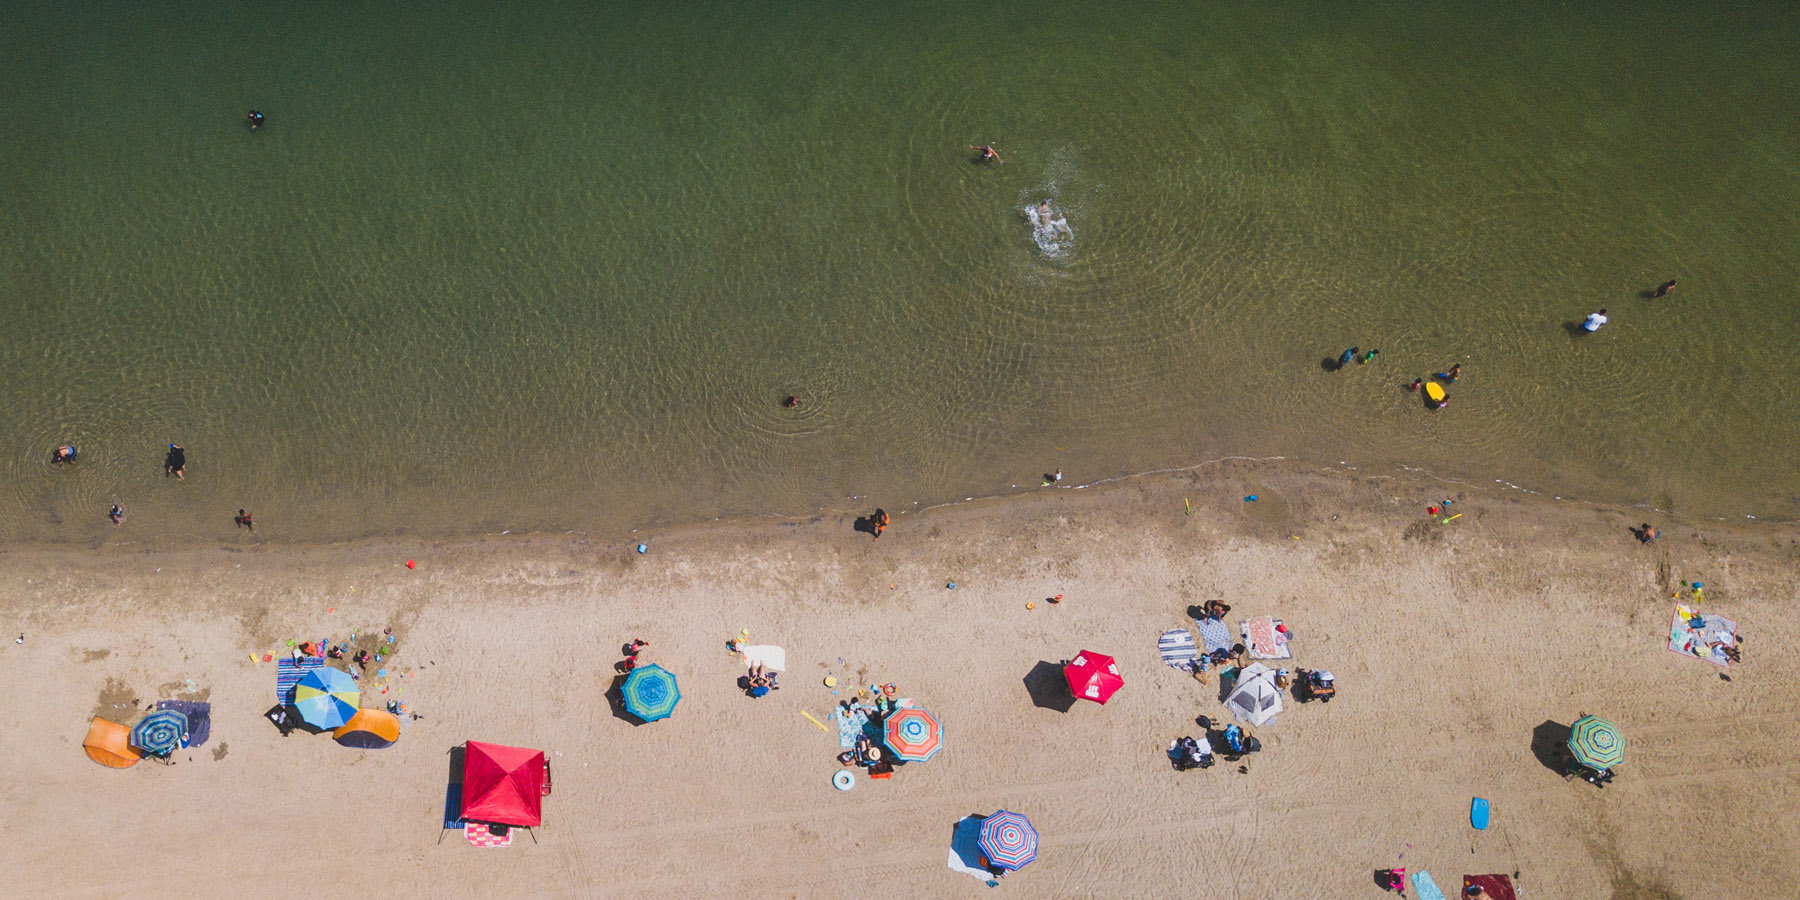 Beachgoers sit under umbrellas by the water.